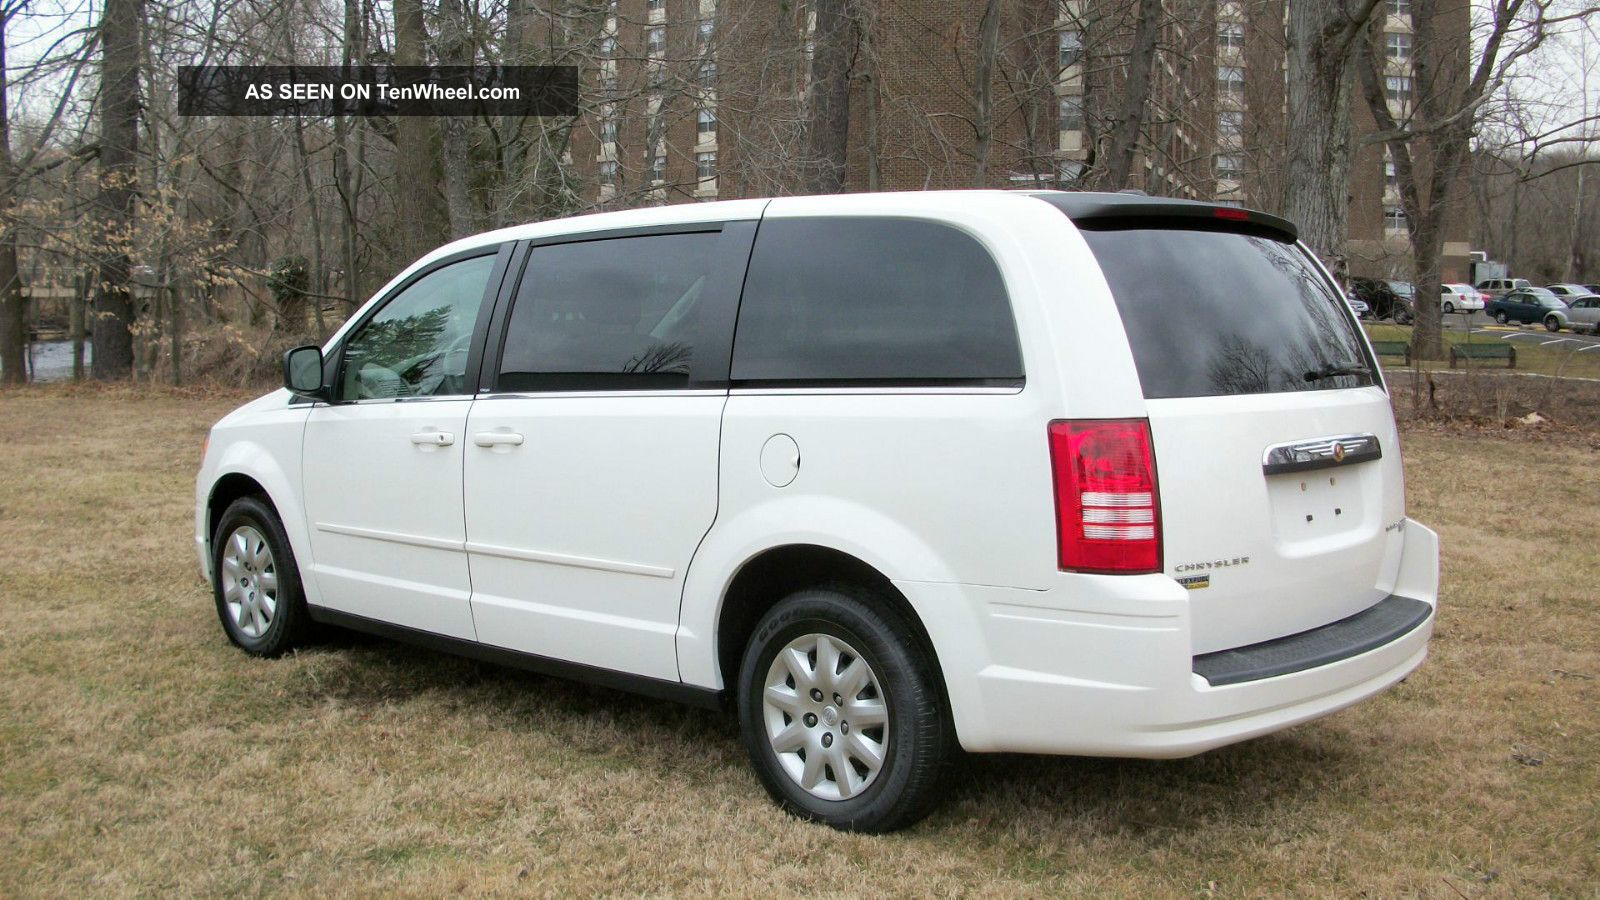 2010 chrysler town country lx mini van 7 passenger stow go seating runs 100. Black Bedroom Furniture Sets. Home Design Ideas